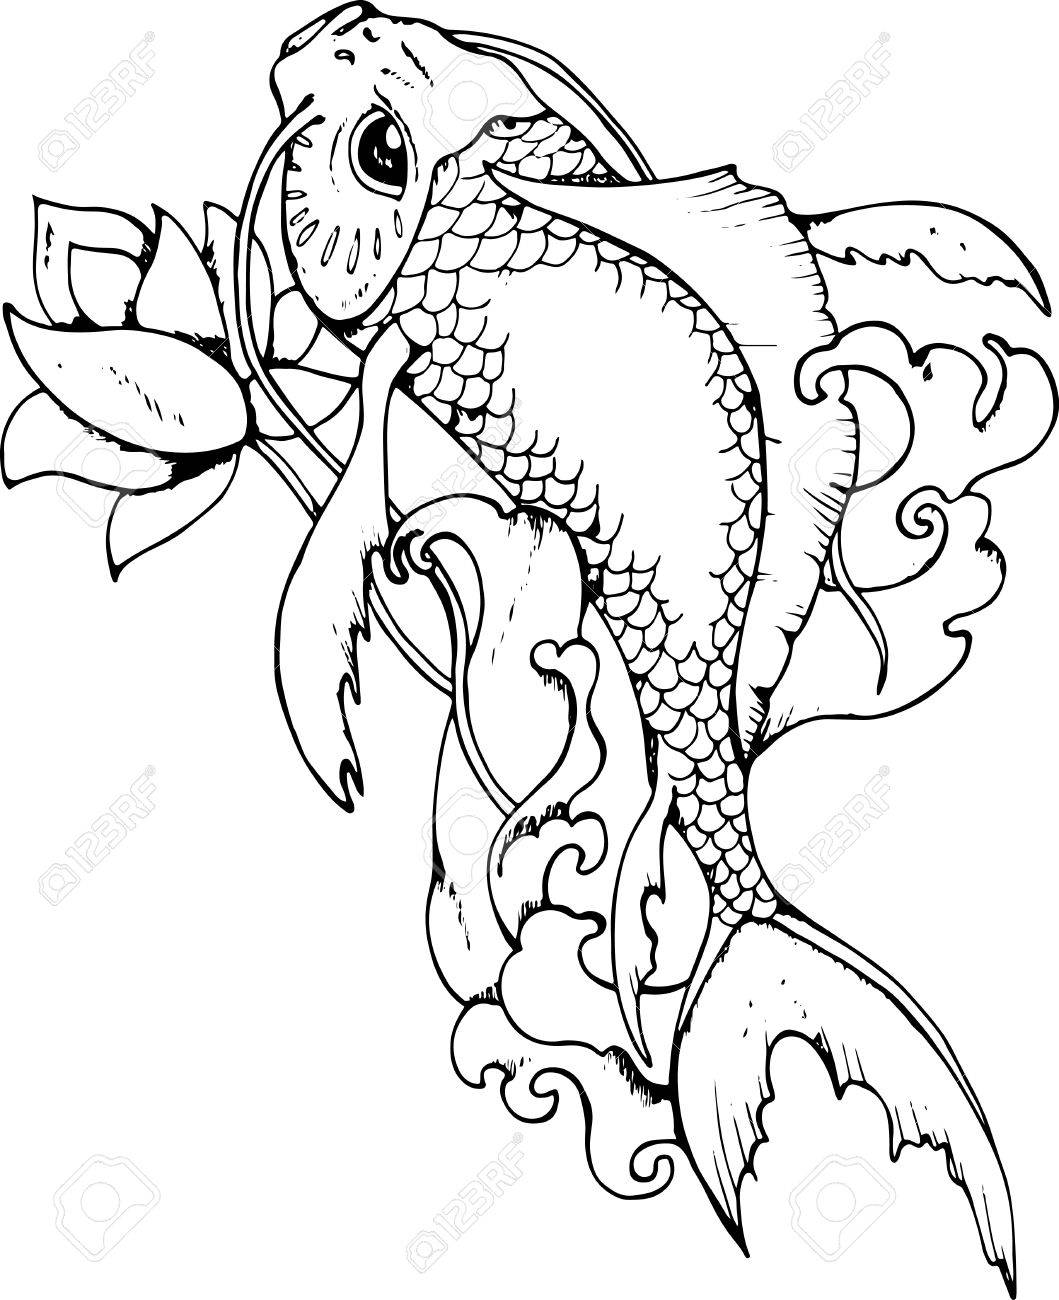 1059x1300 Llustration Of Japanese Carp. Black And White Drawing Royalty Free